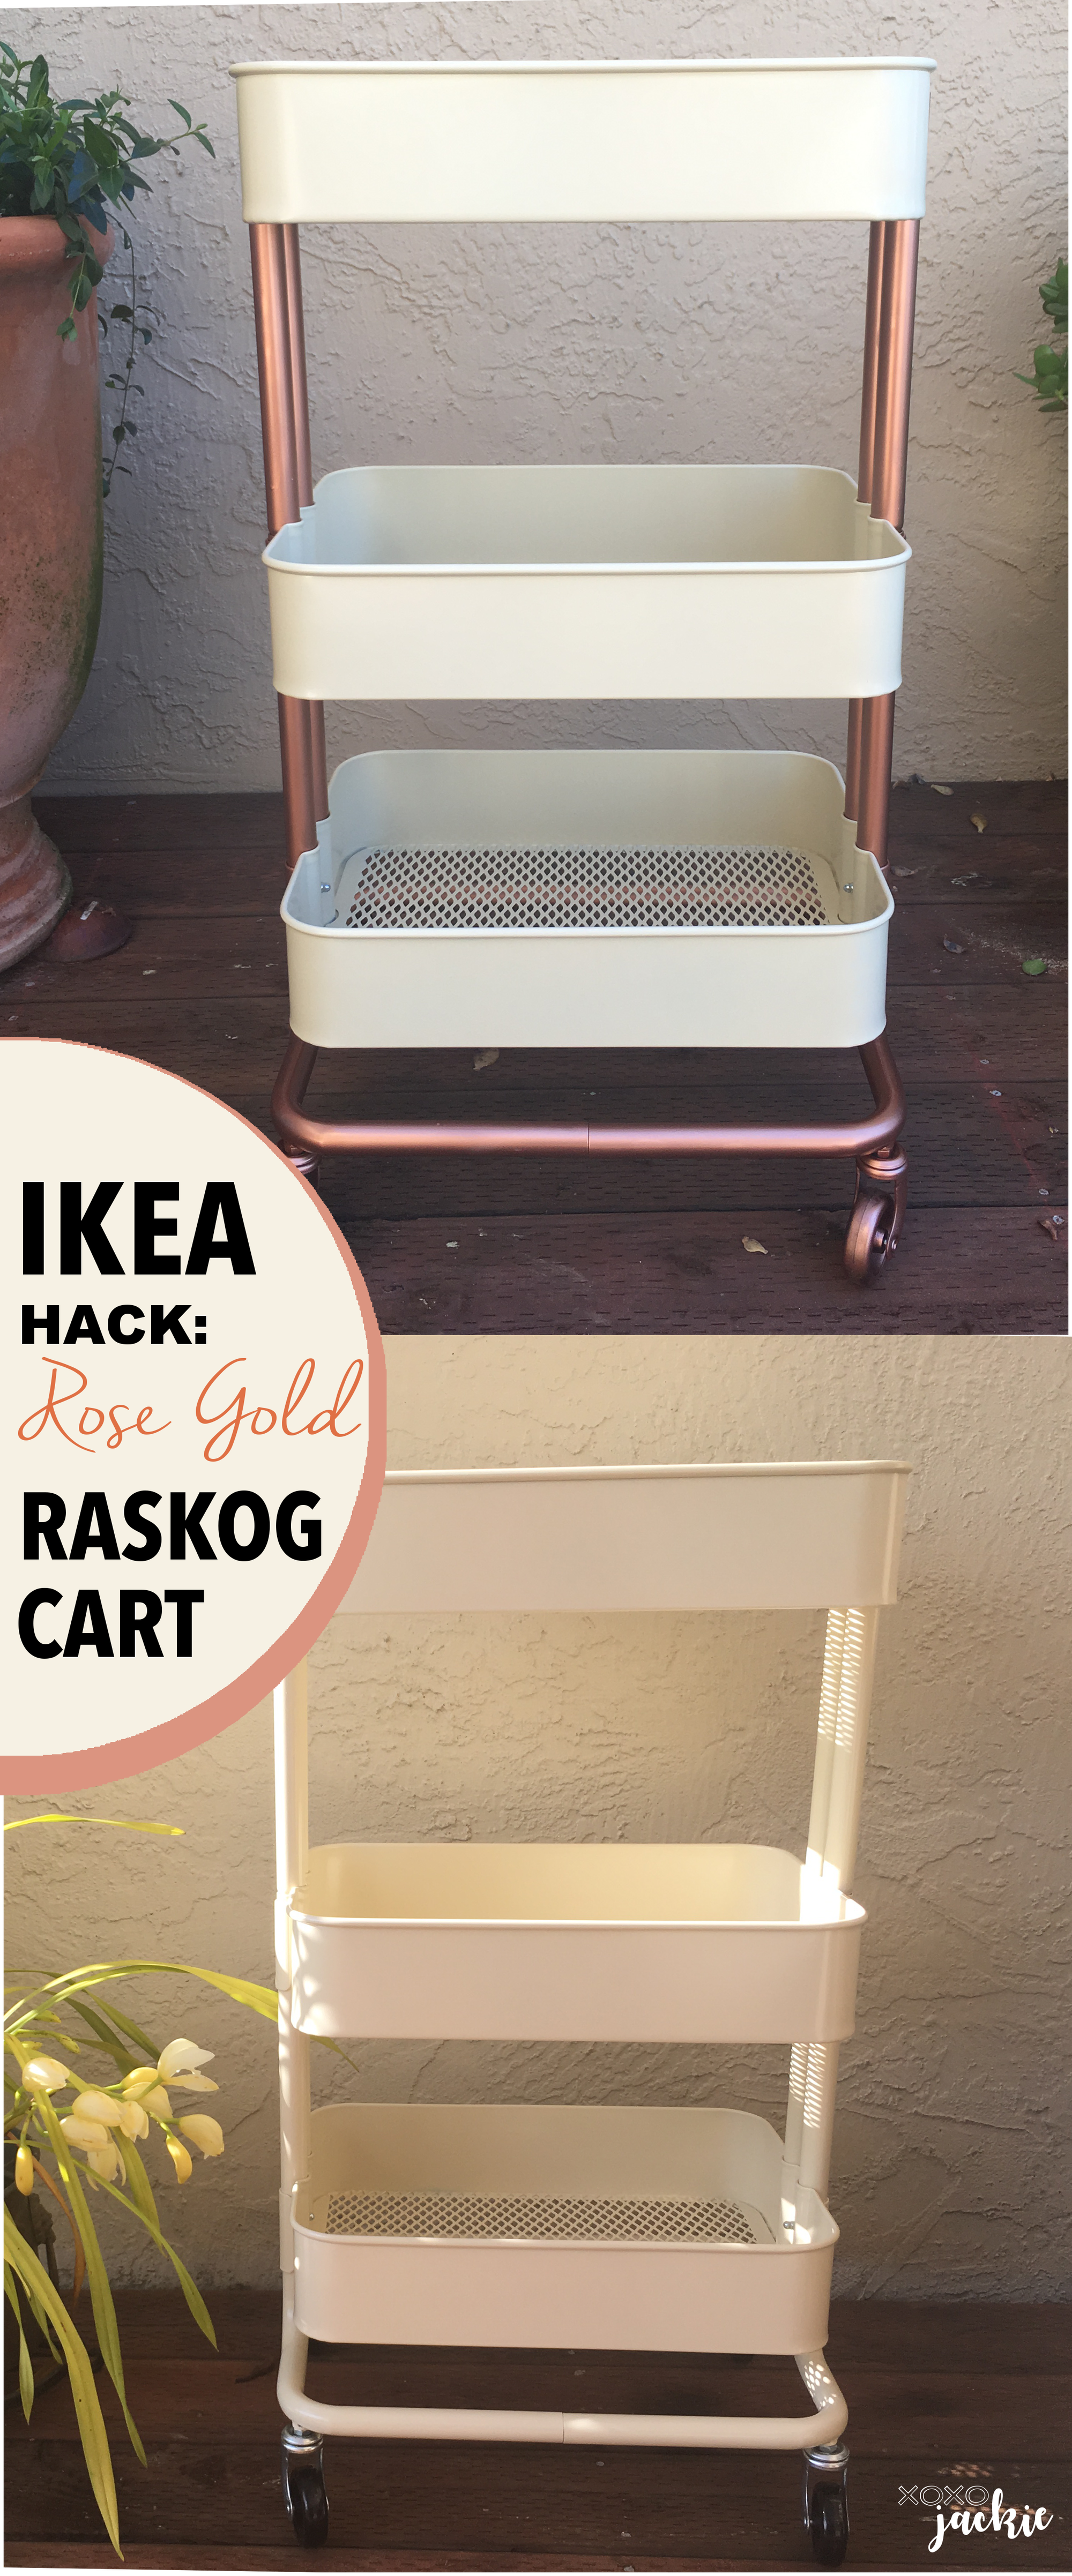 Raskog IKEA Cart Hack is part of Gold Home Accents Ikea Hacks - Transform a plain IKEA Raskog Cart into a chic accent piece  Check out the easy steps for spray painting your cart to give it a unique look